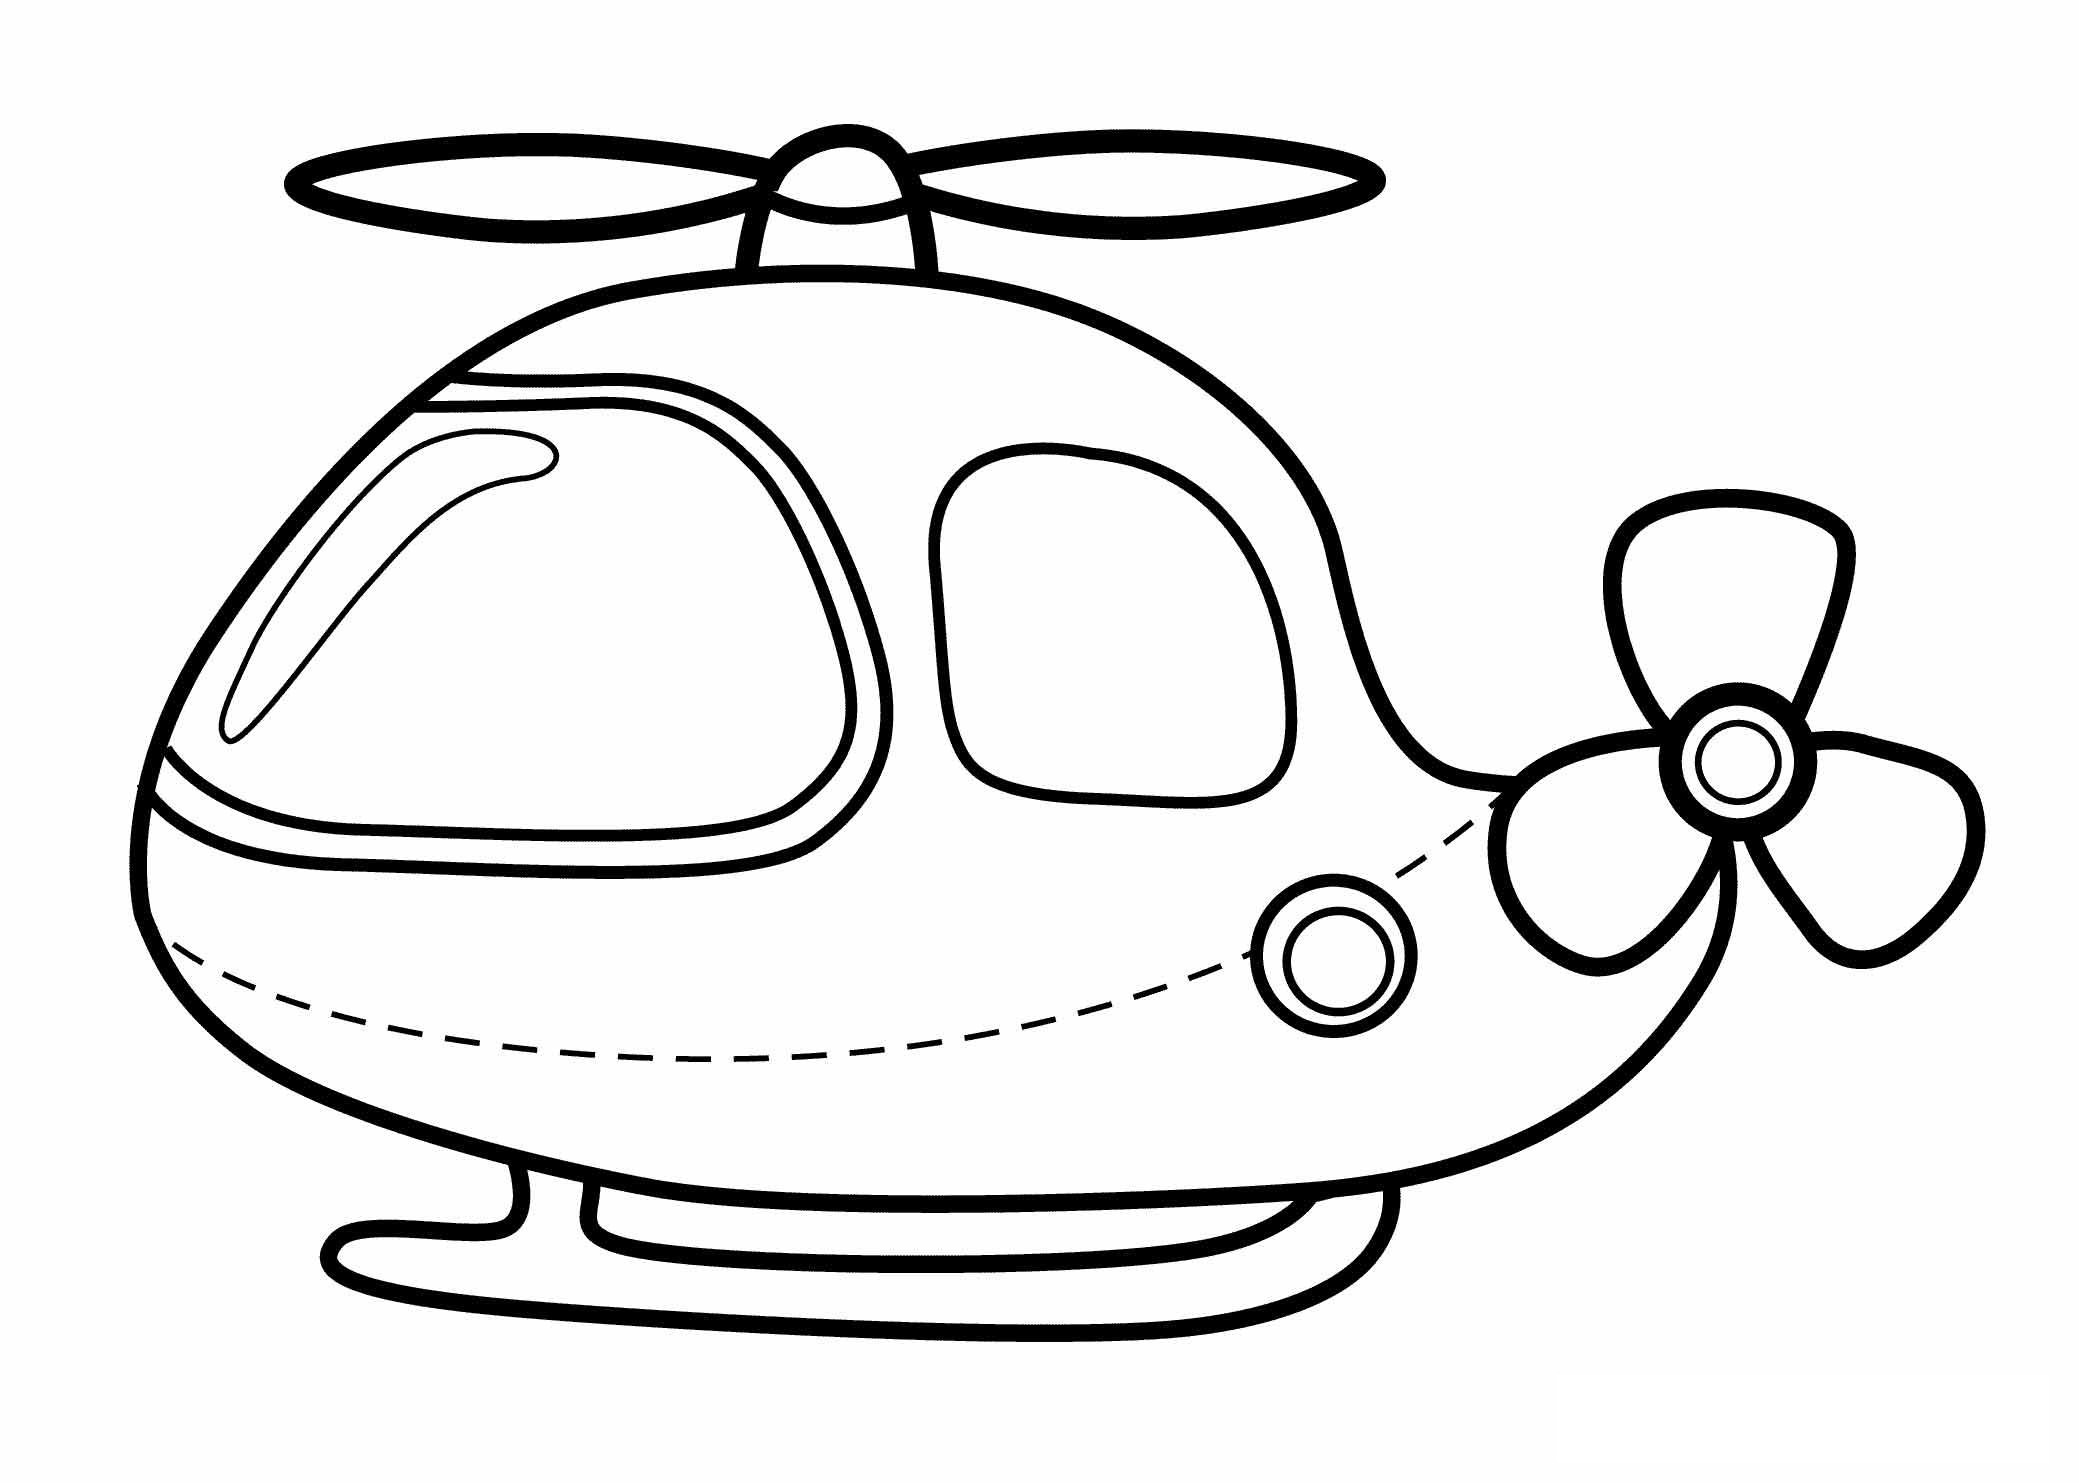 colouring pages of helicopter free printable helicopter coloring pages for kids helicopter colouring of pages